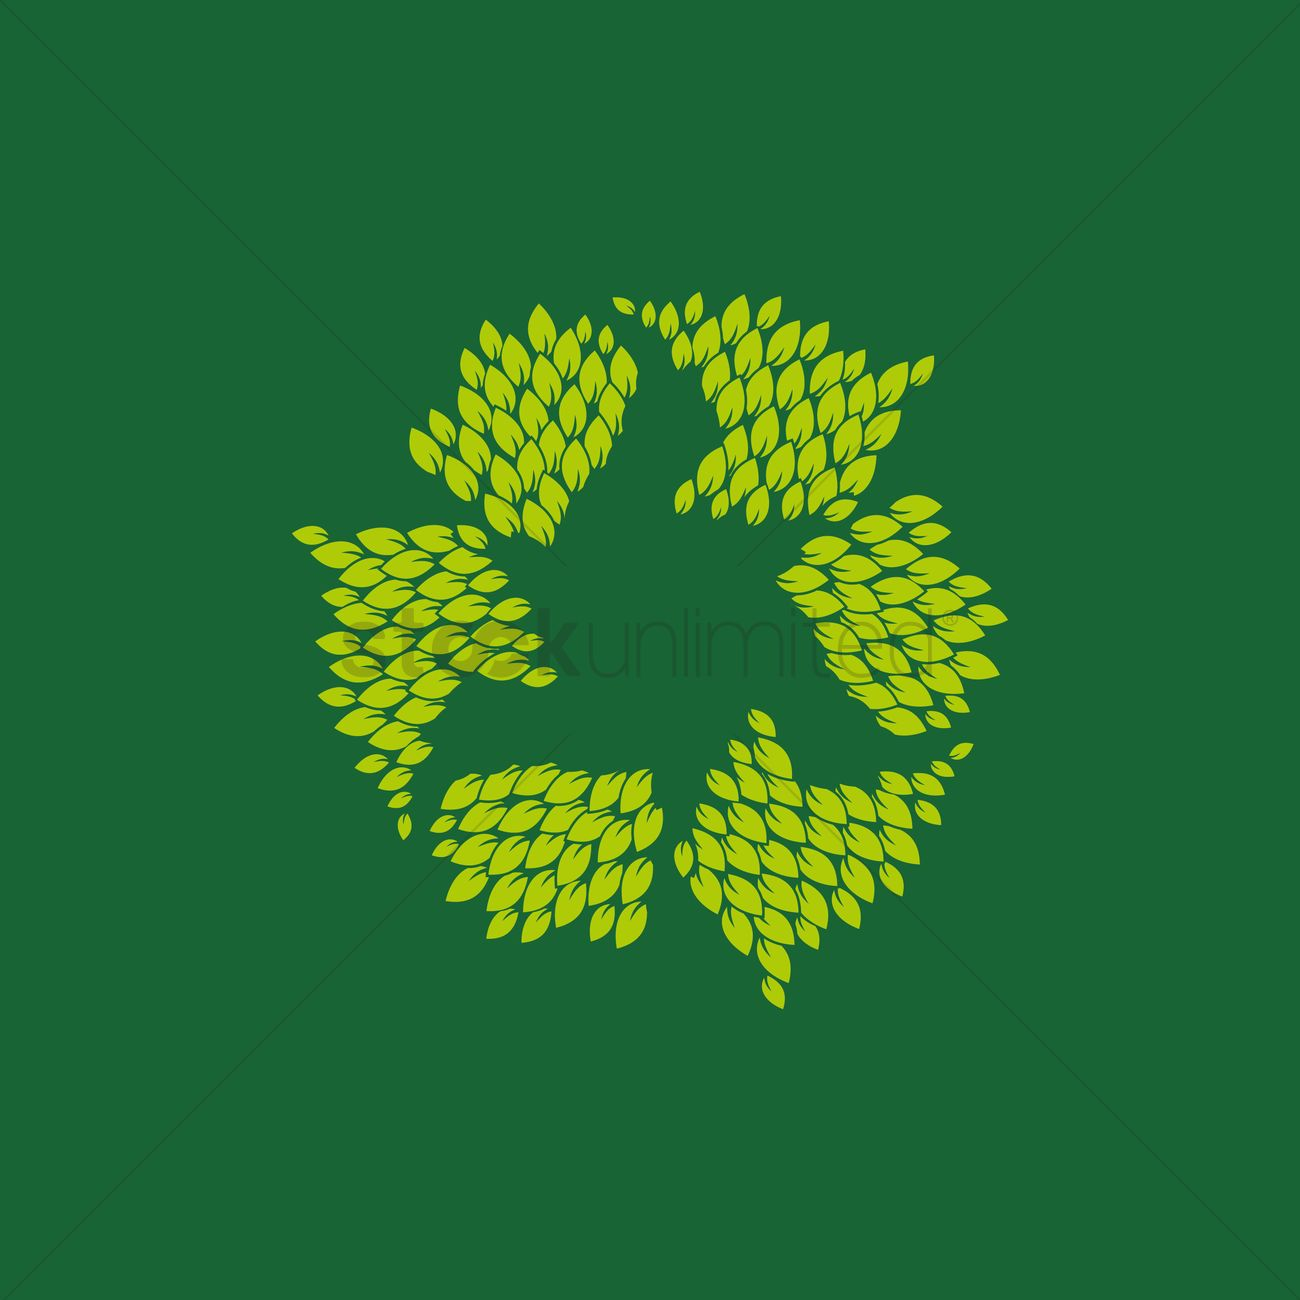 Free Recycle Symbol With Leaves Vector Image 1261177 Stockunlimited